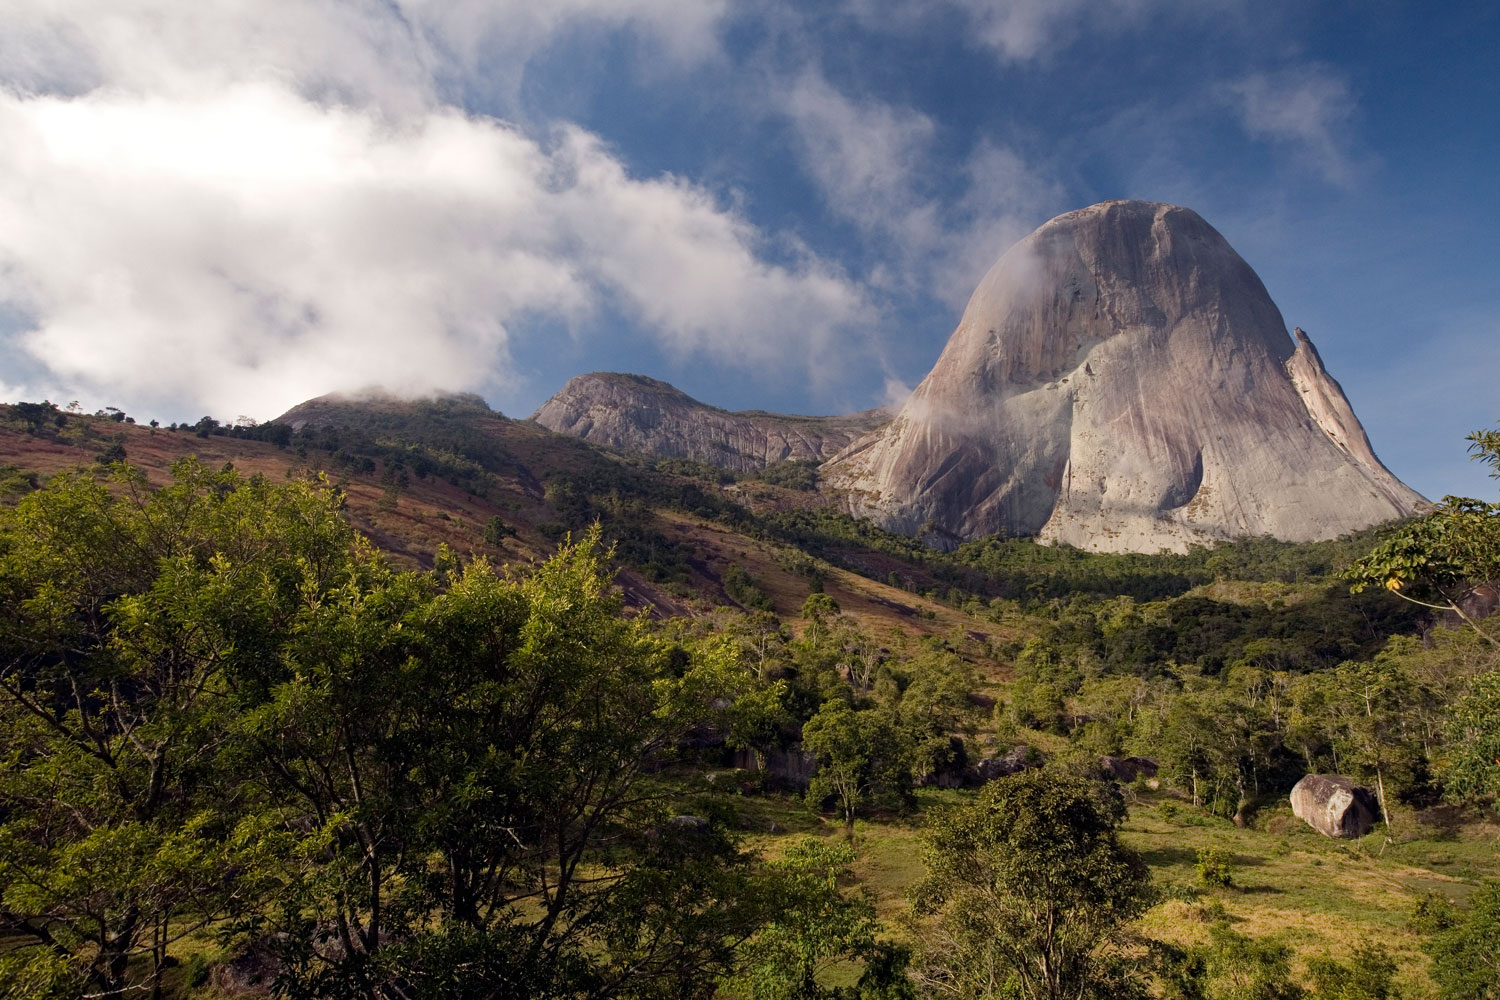 The granite mountain Pedra Azul, Portugese for  blue mountain,  is named for the shade of blue it appears to turn at dawn and sunset.